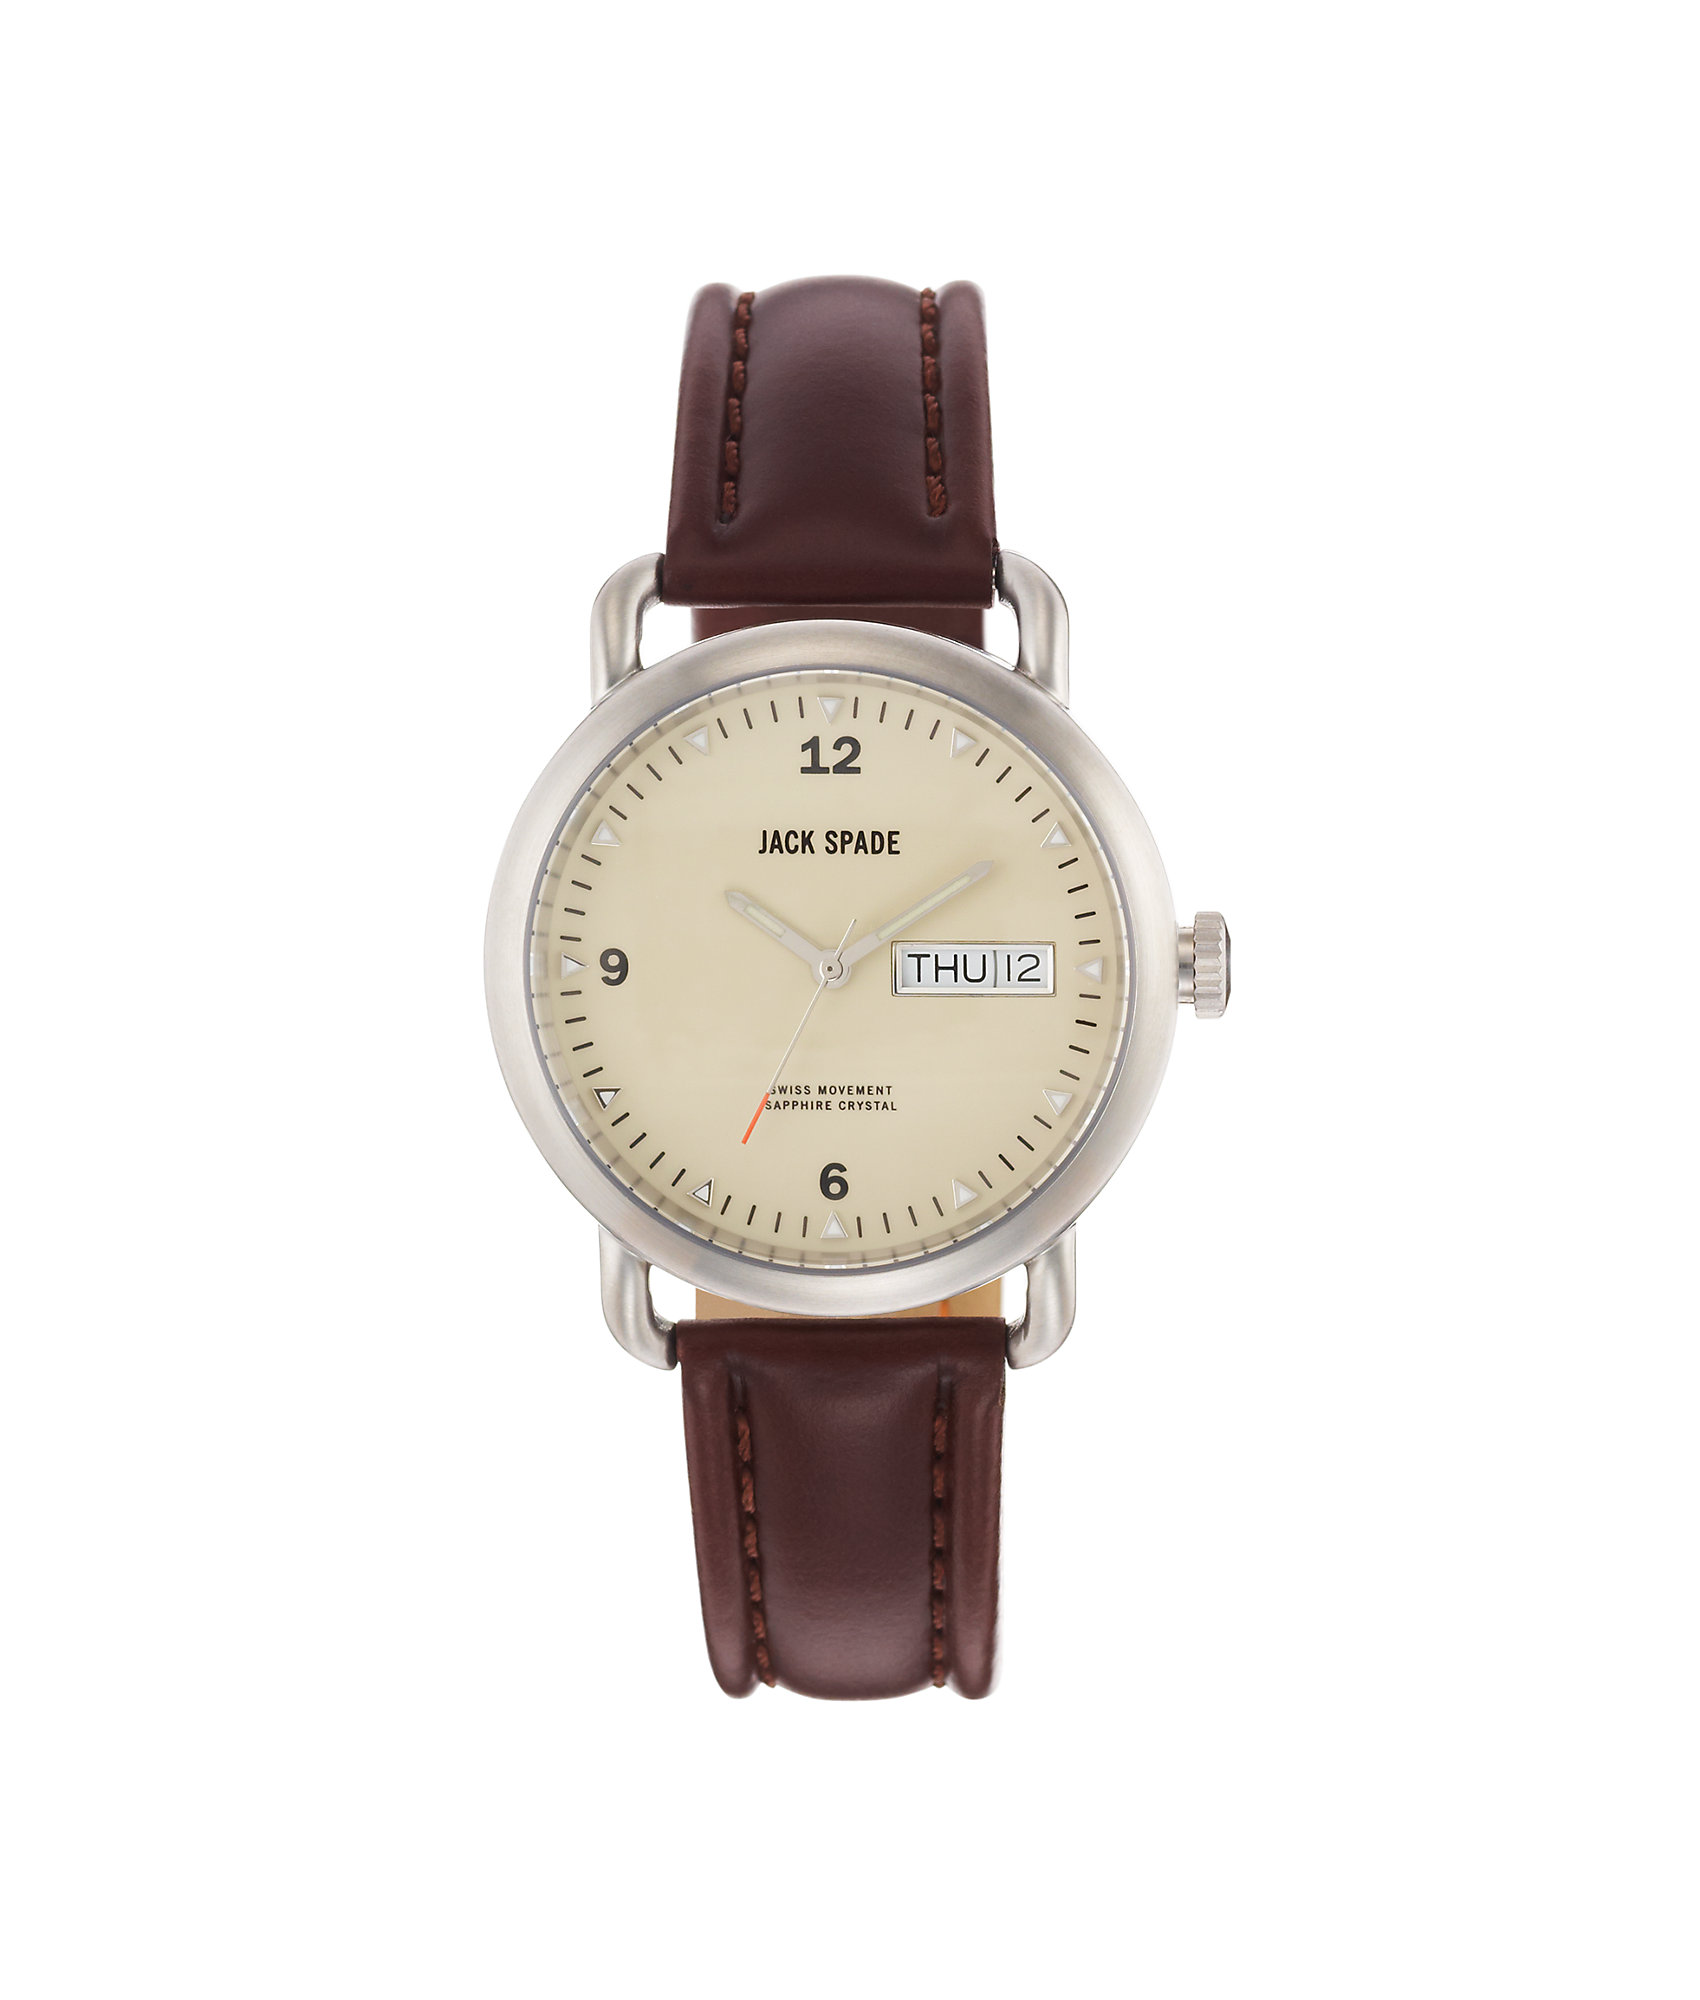 Stillwell 38mm Watch